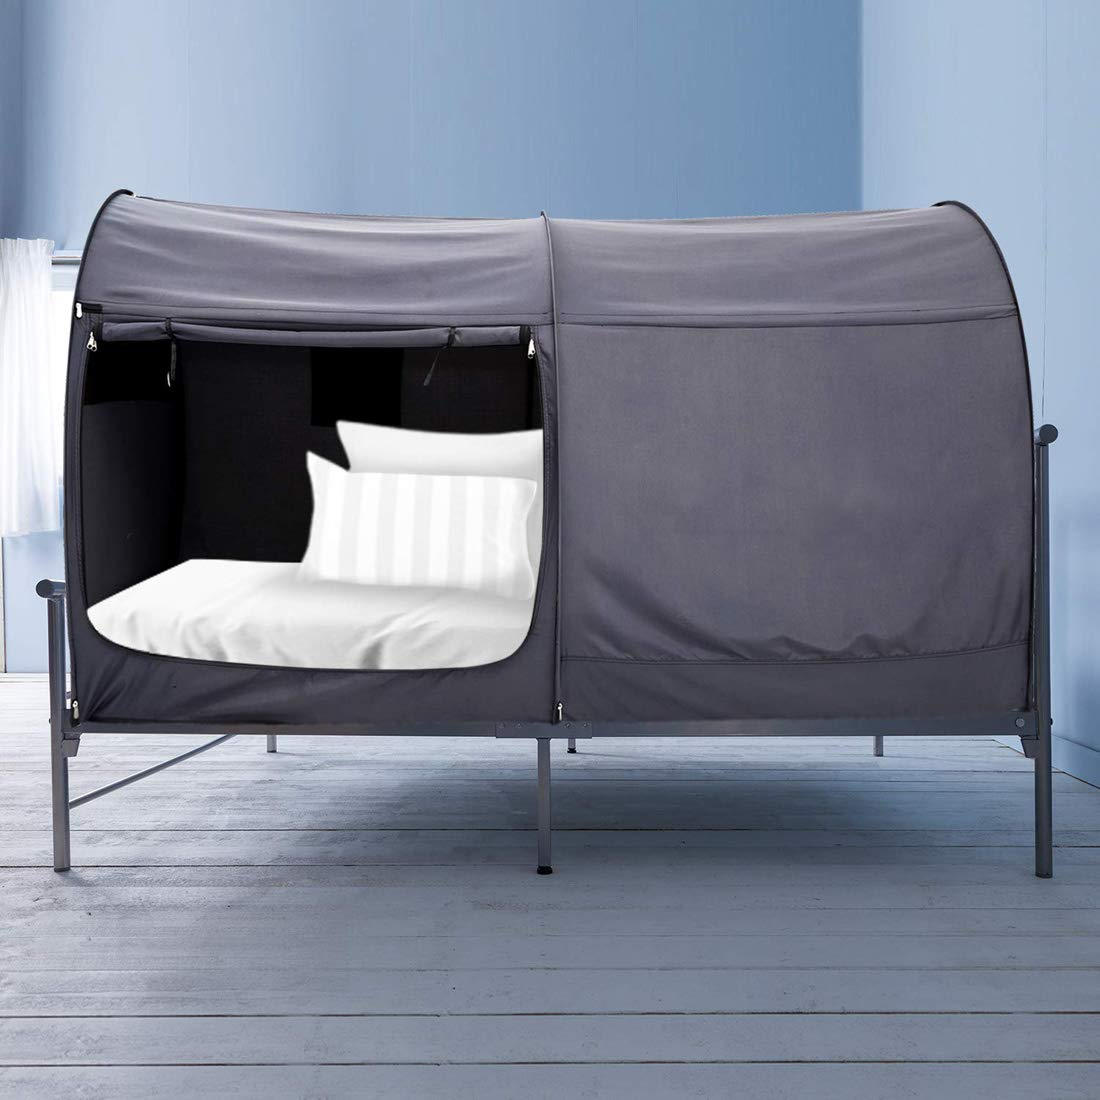 Alvantor Bed Canopy Bed Tents Dream Tents Privacy Space Twin Size Sleeping Tents Indoor Pop Up Portable Frame Curtains Breathable Grey Cottage Mattress Not Included